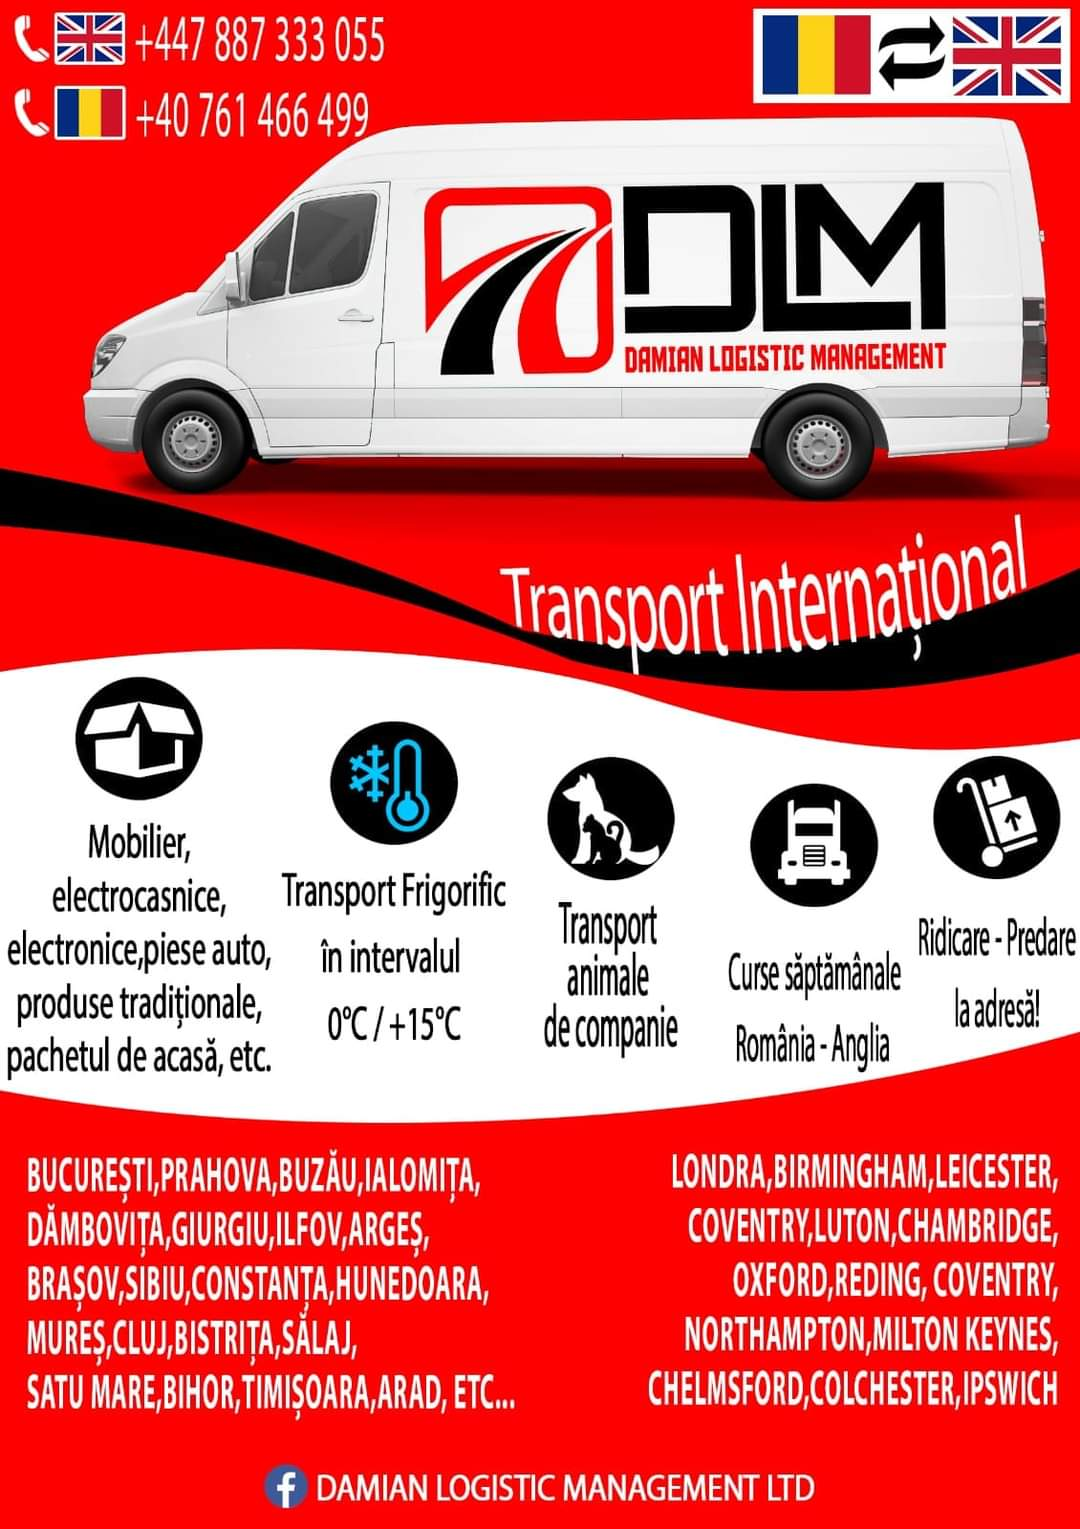 Transport international Romania Anglia‼️